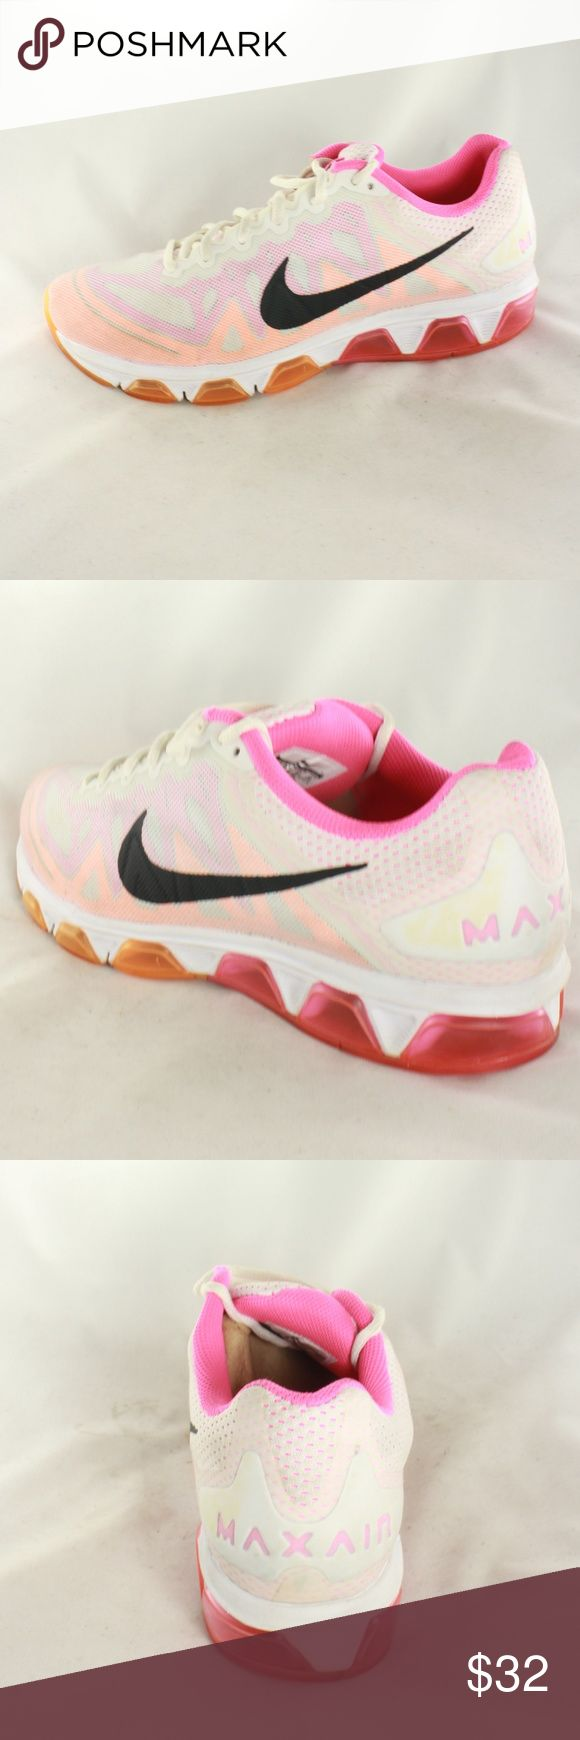 NIKE Air Max Tailwind 7 Run Sneakers 683635-106 Great colorway, light, breathable. Upper is super clean and mint. Midsole is clean. Sole has very little wear from being gently worn.  Size 11 Nike Shoes Athletic Shoes